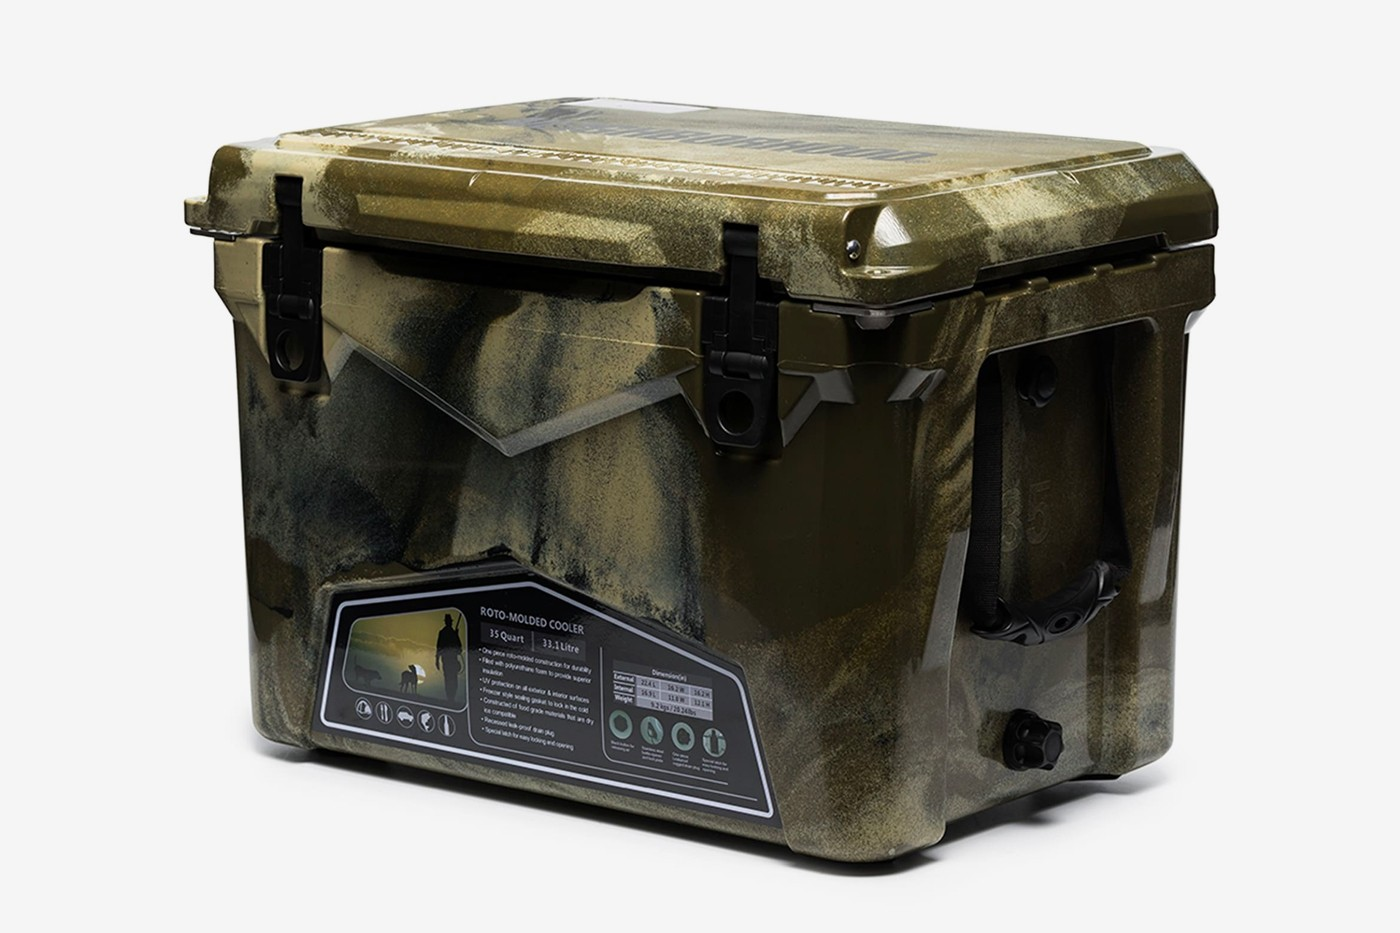 Oto 30l. Cooler Od NEIGHBORHOOD Oraz Iceland Coolers